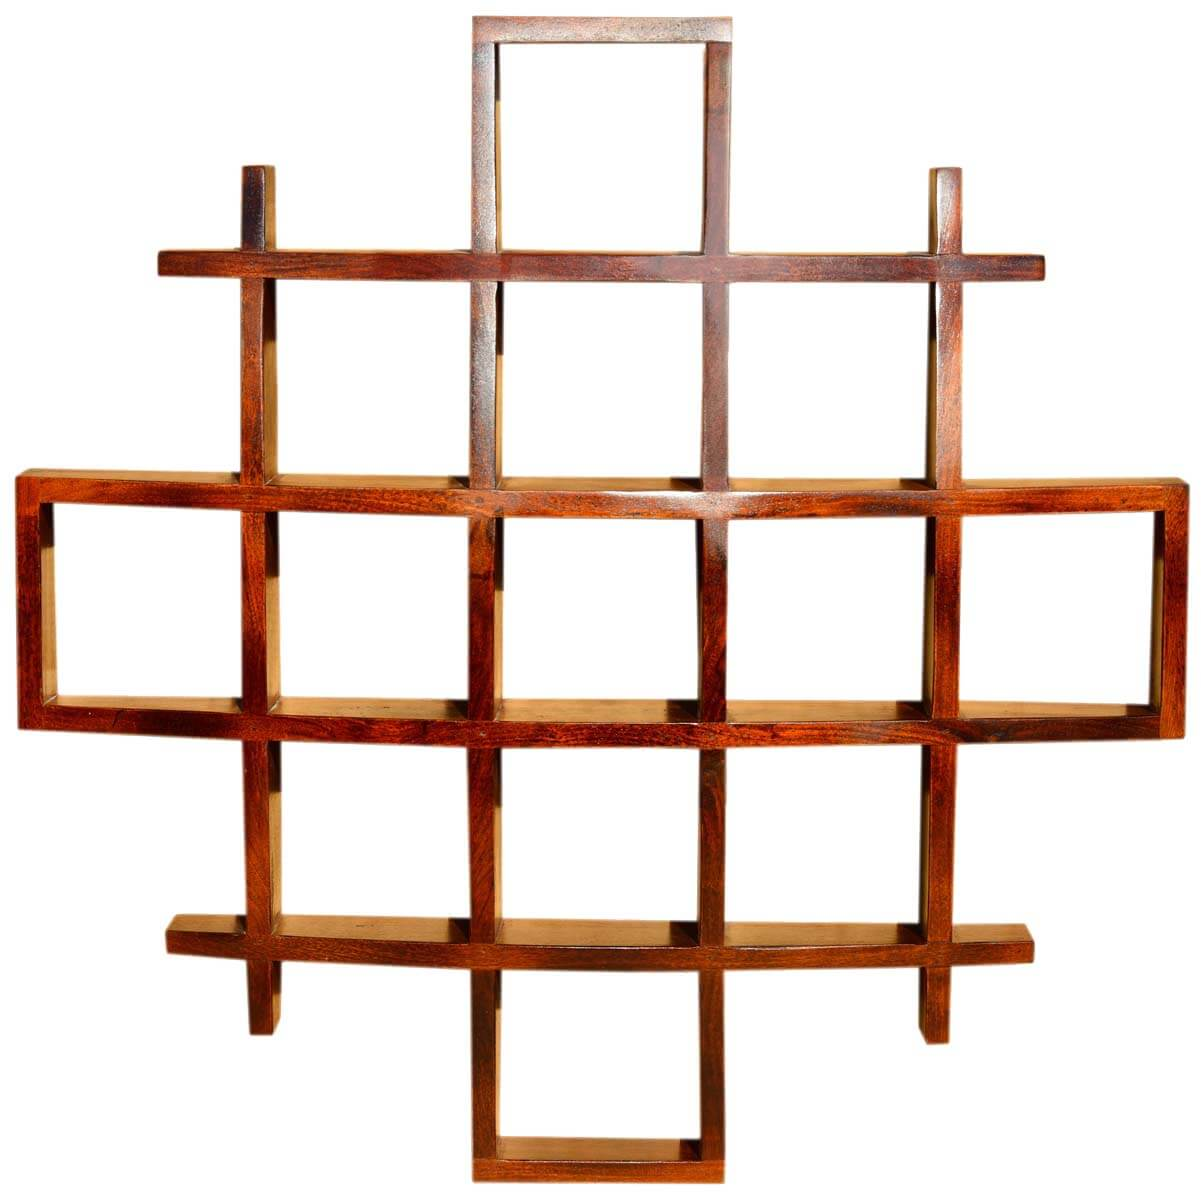 Contemporary Wood Display Wall Hanging Shelves Home Decor